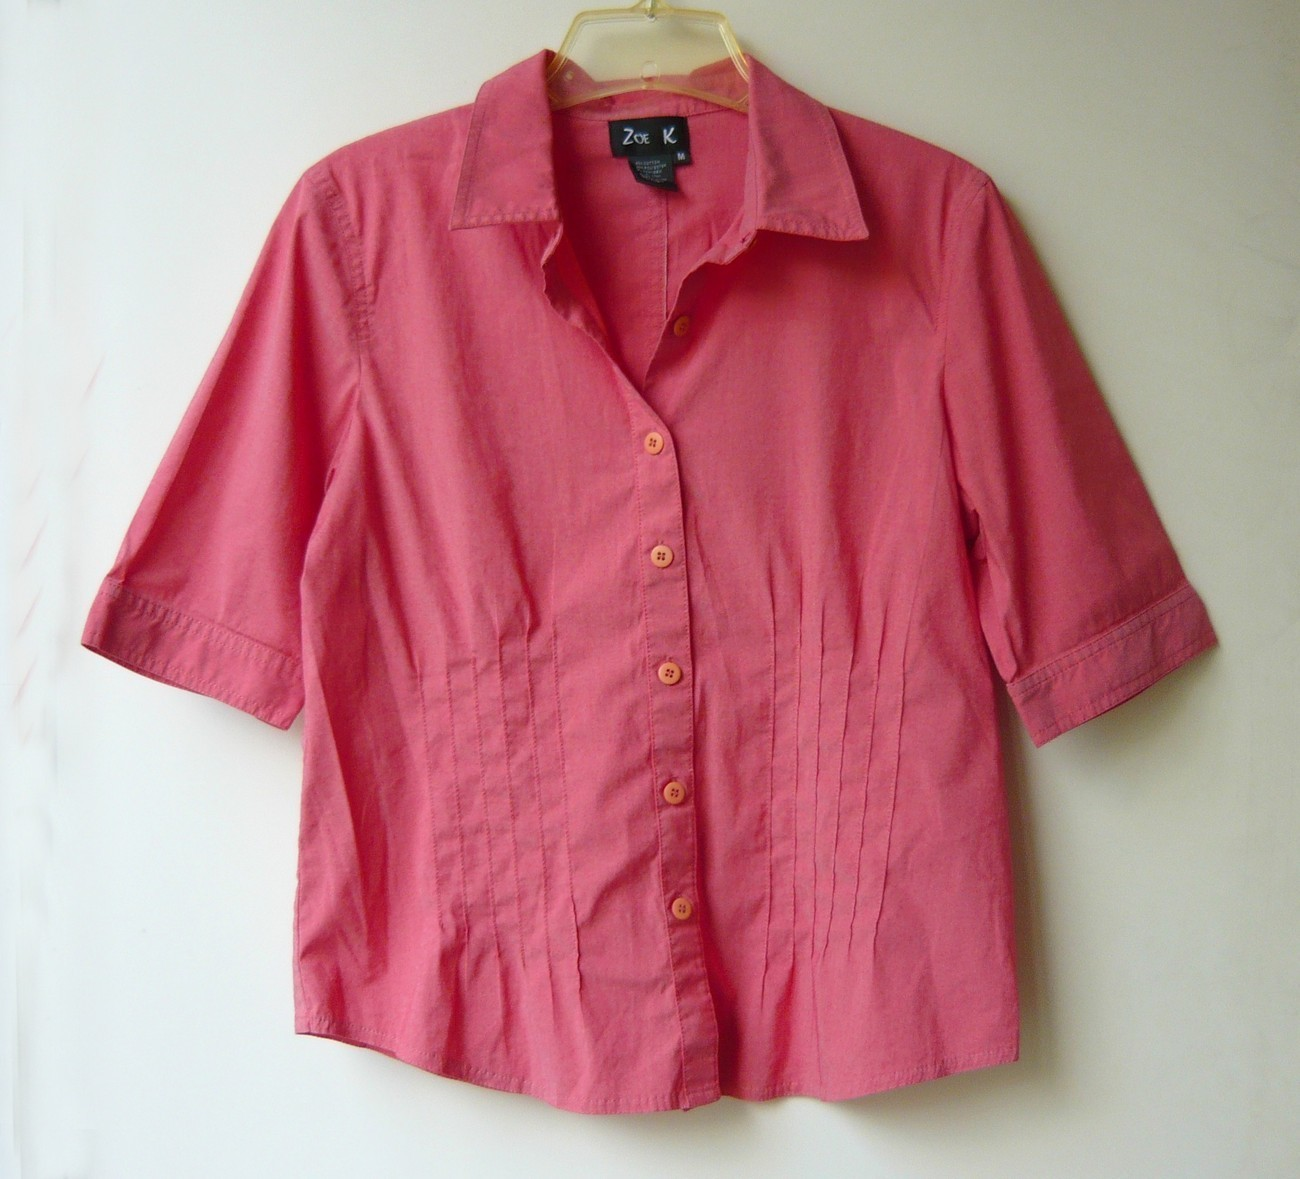 Primary image for Salmon Stretchy Button Down Short Sleeved Blouse sz. m